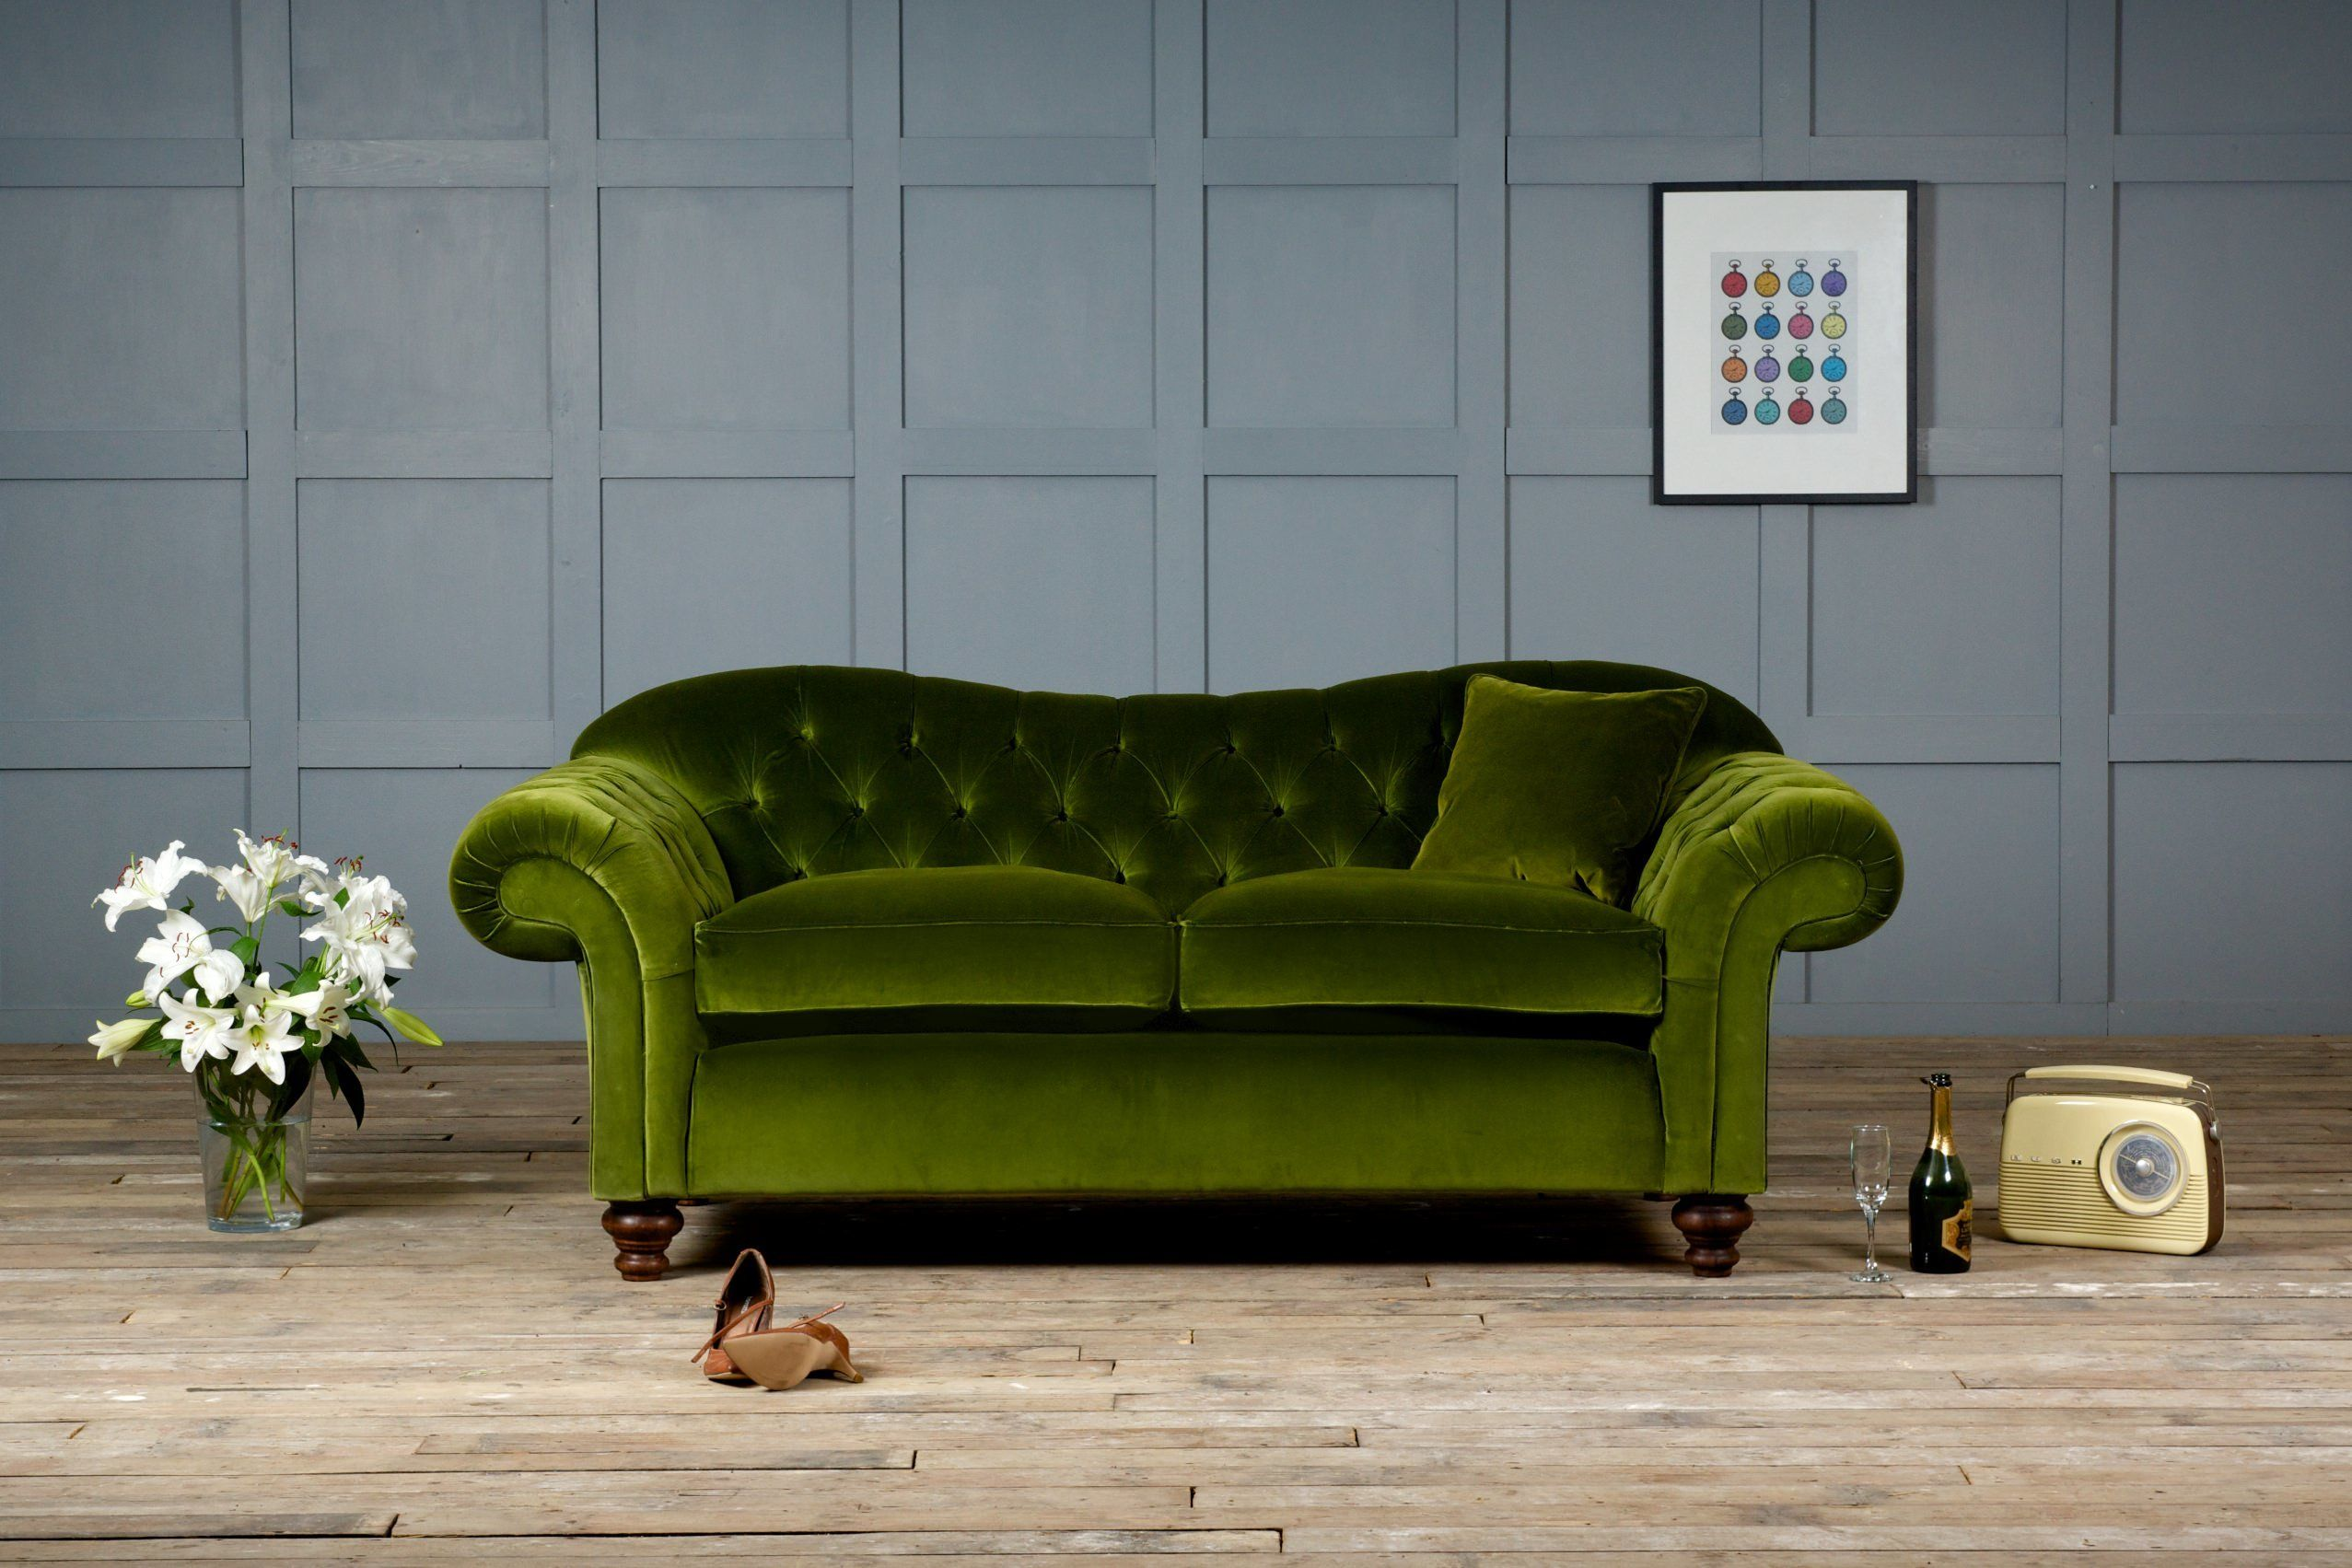 Attractive Green Velvet Sofa With Armchairs For Living Room ...